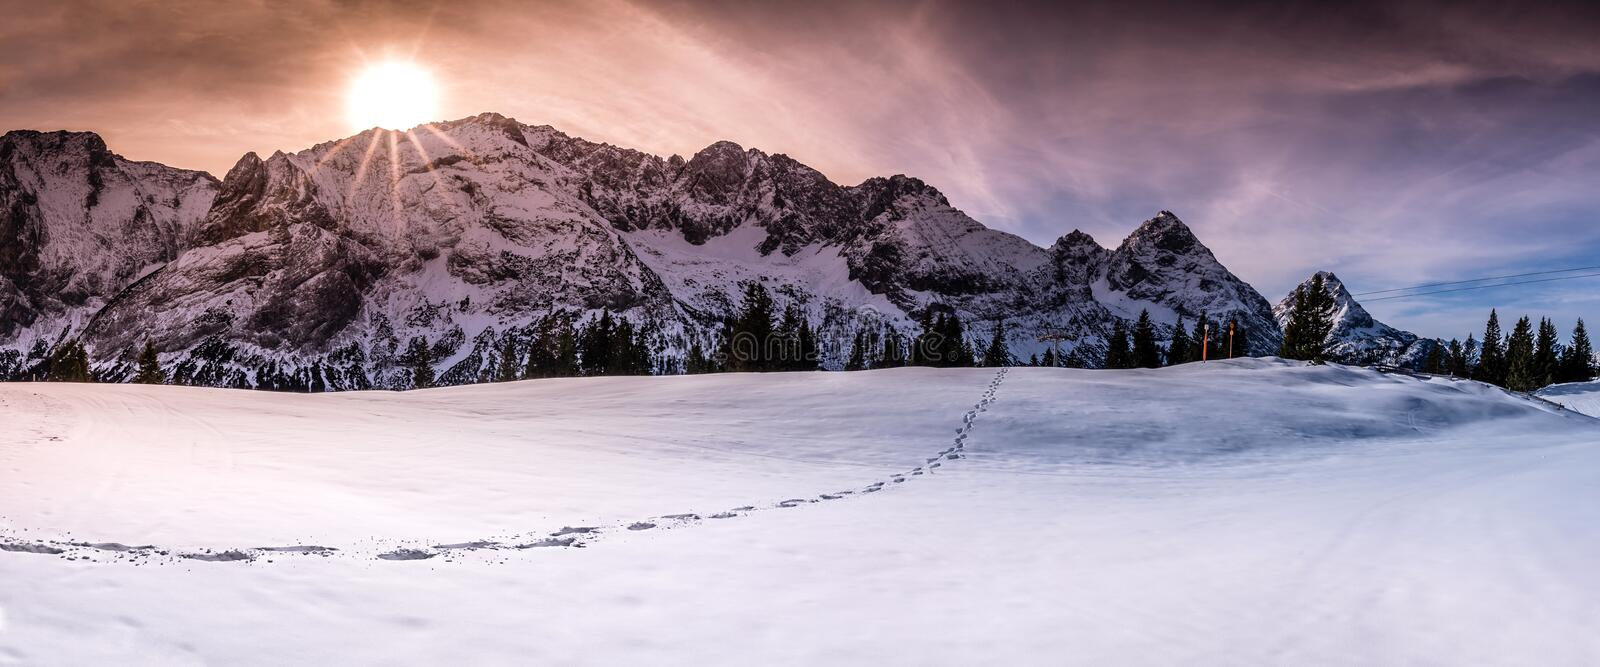 Mountain peaks with footsteps on snow royalty free stock photos